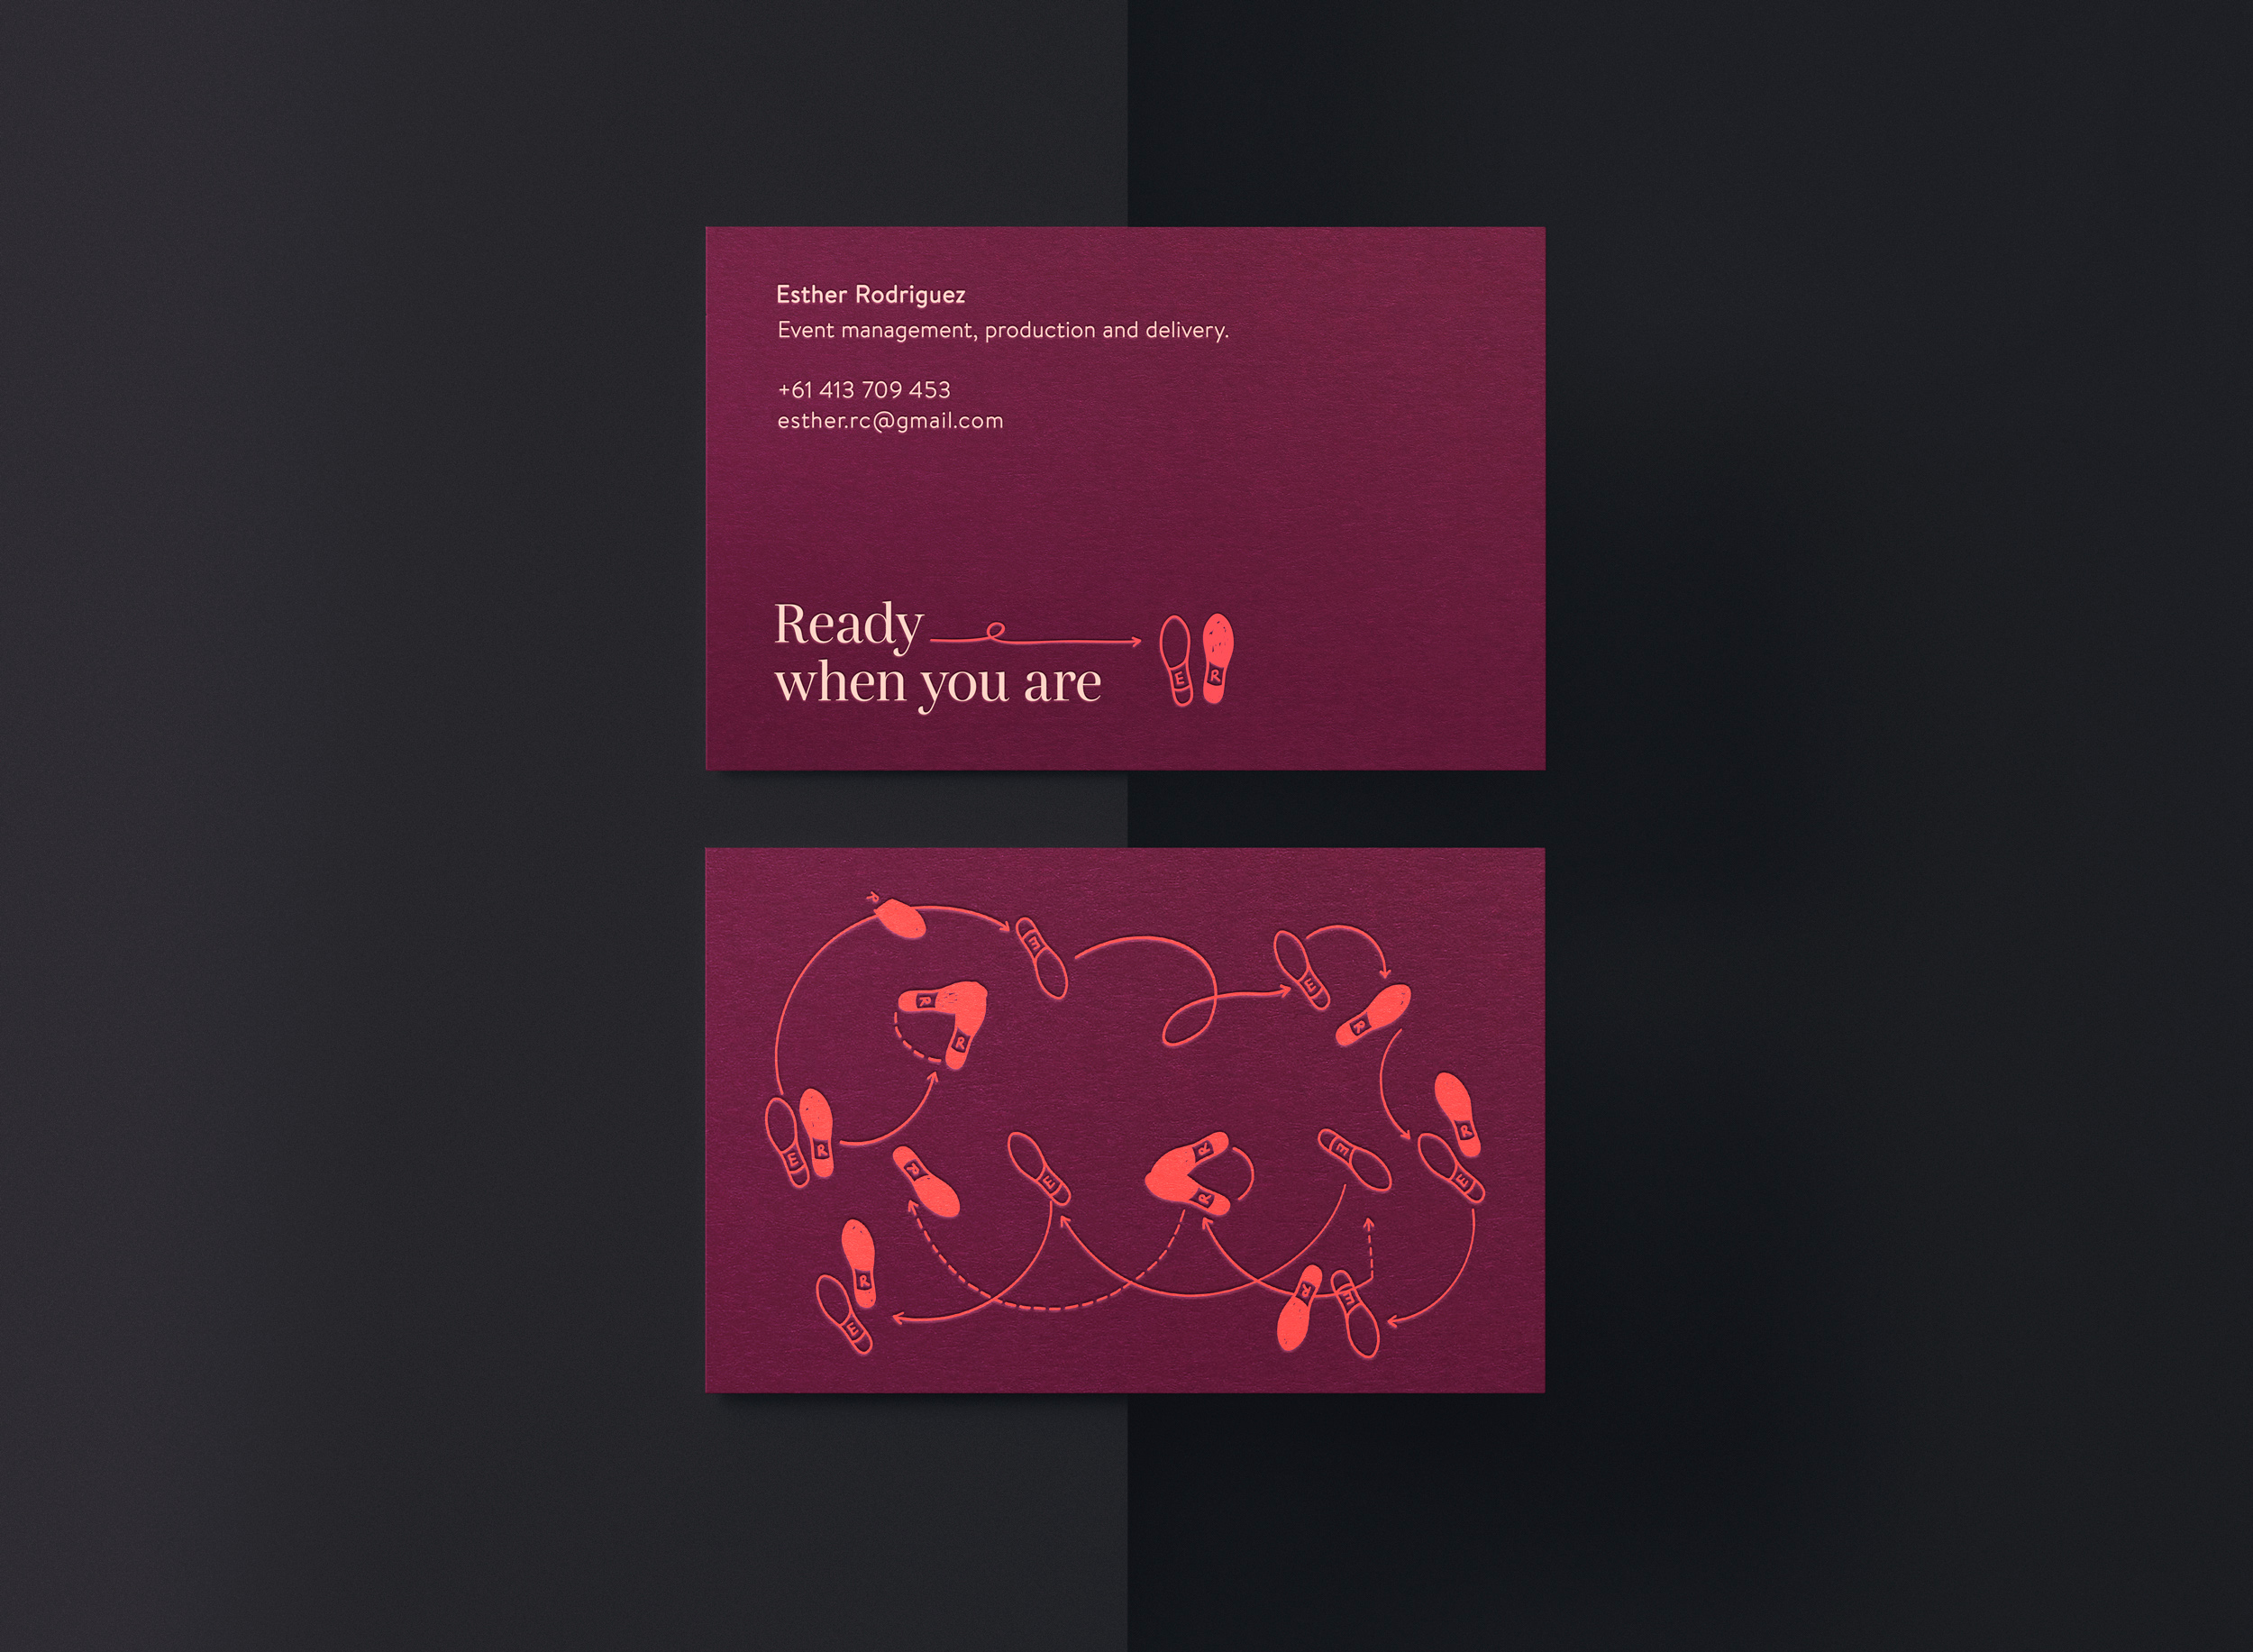 Esther Rodriguez Business Card